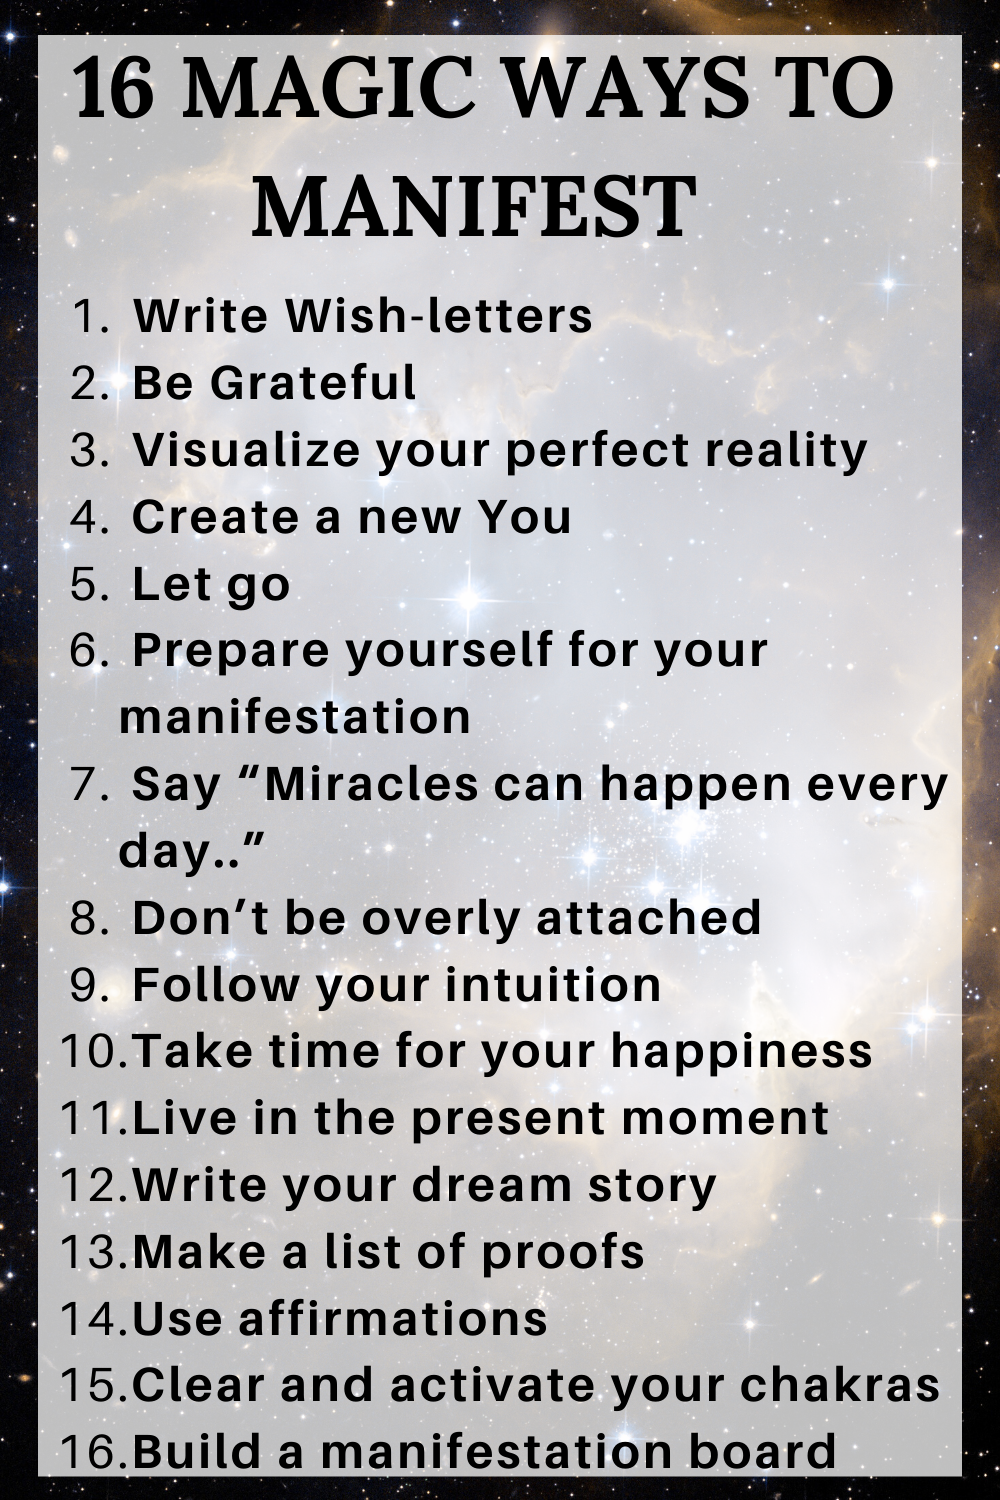 How to Manifest Anything You Want in 24 Hours